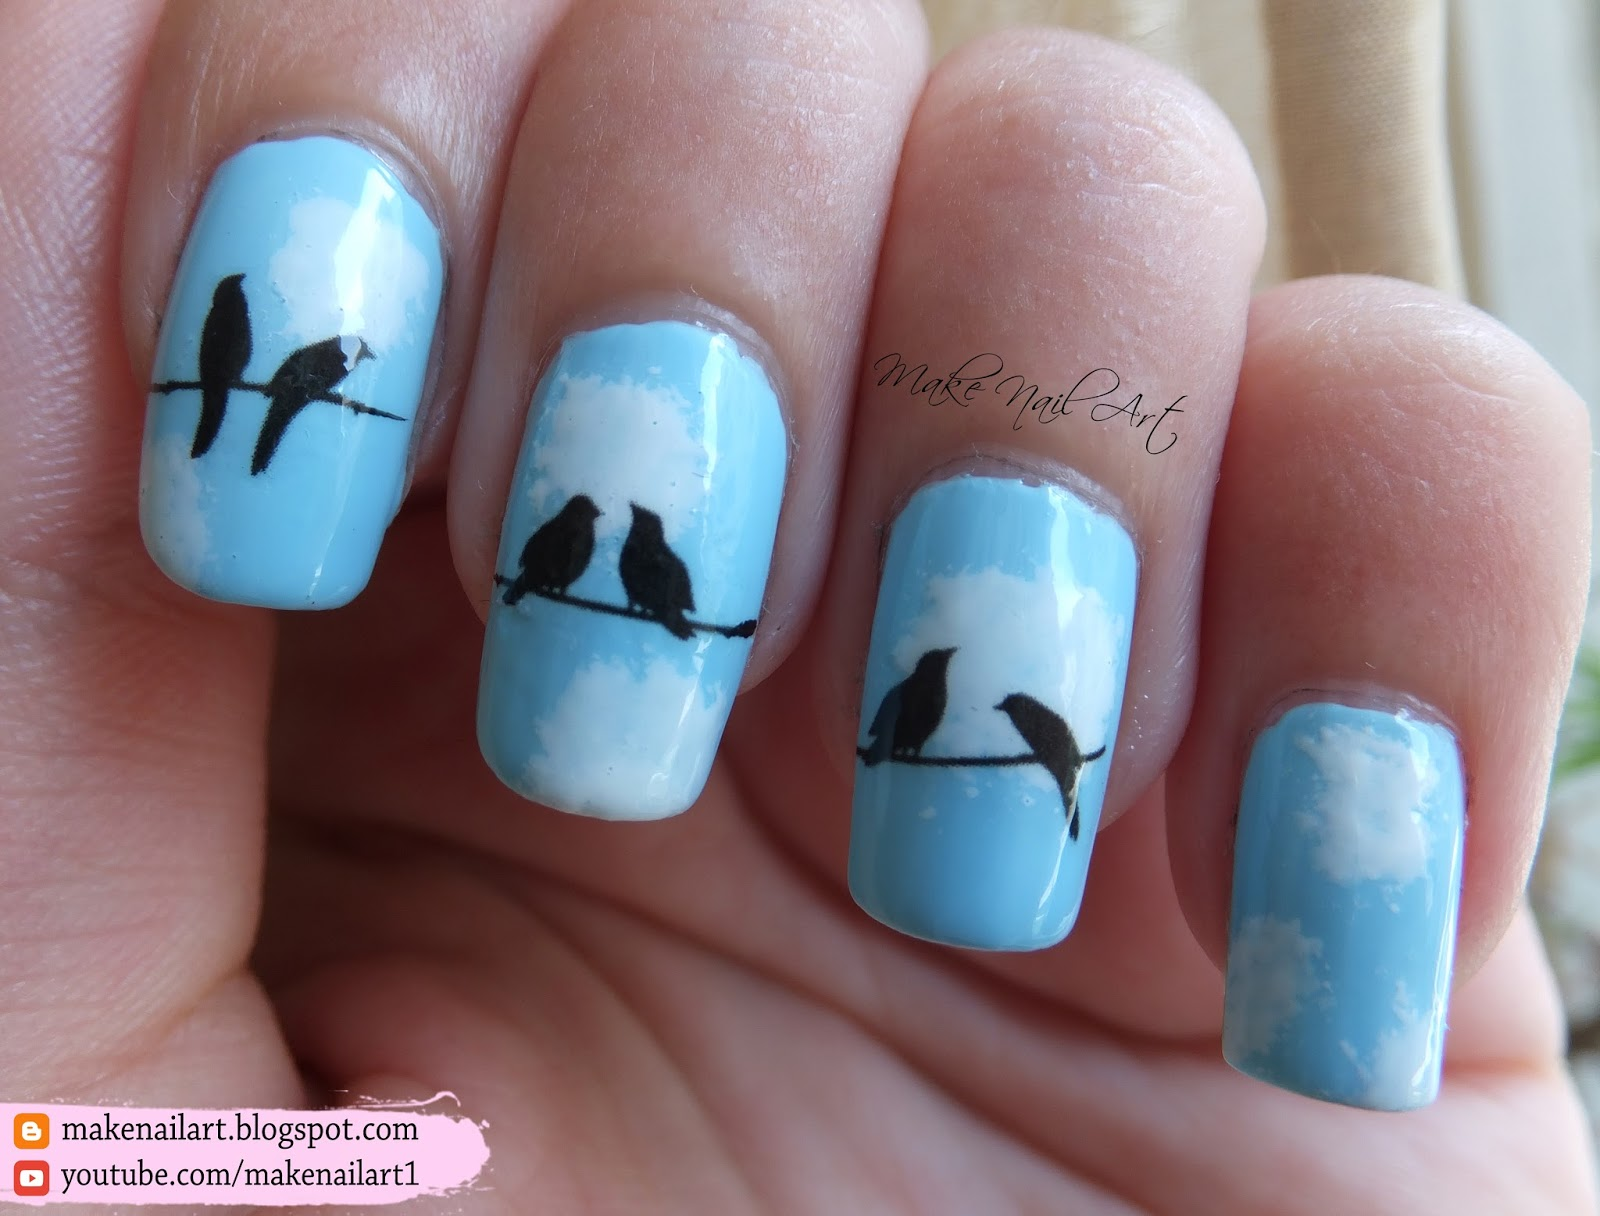 Make Nail Art Birds On A Wire Nail Art Design Nicole Diary Review